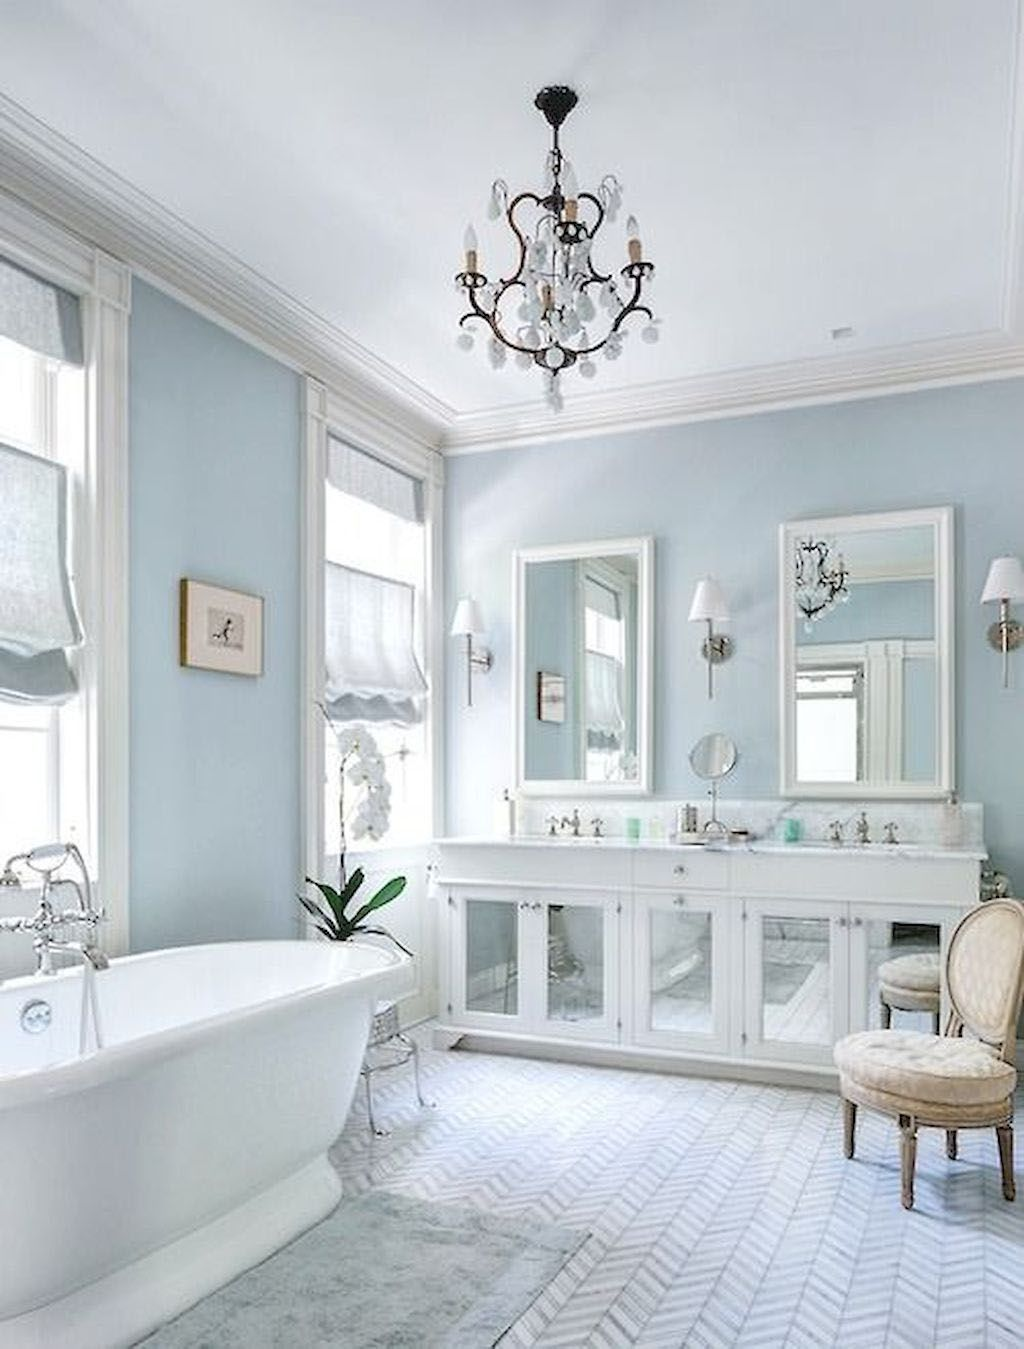 Bedroom Color Ideas That Will Create A Relaxing Oasis White Master Bathroom White Bathroom Designs Light Blue Bathroom